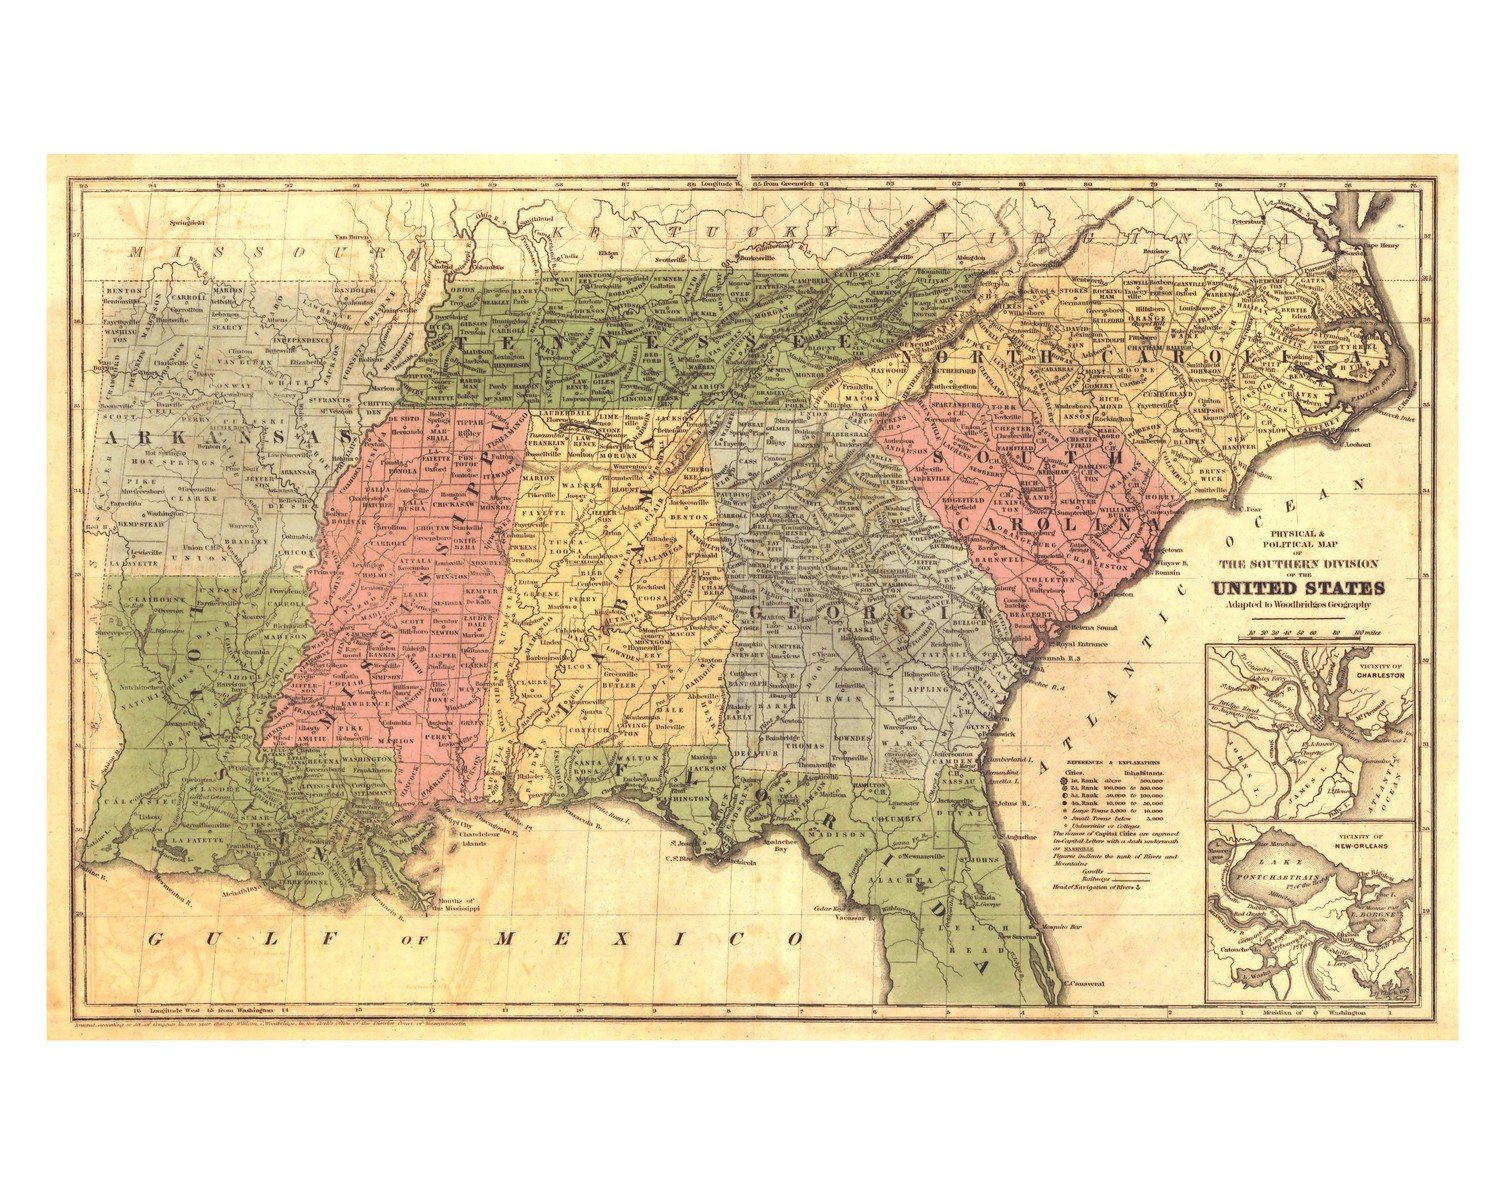 1845 Southern United States